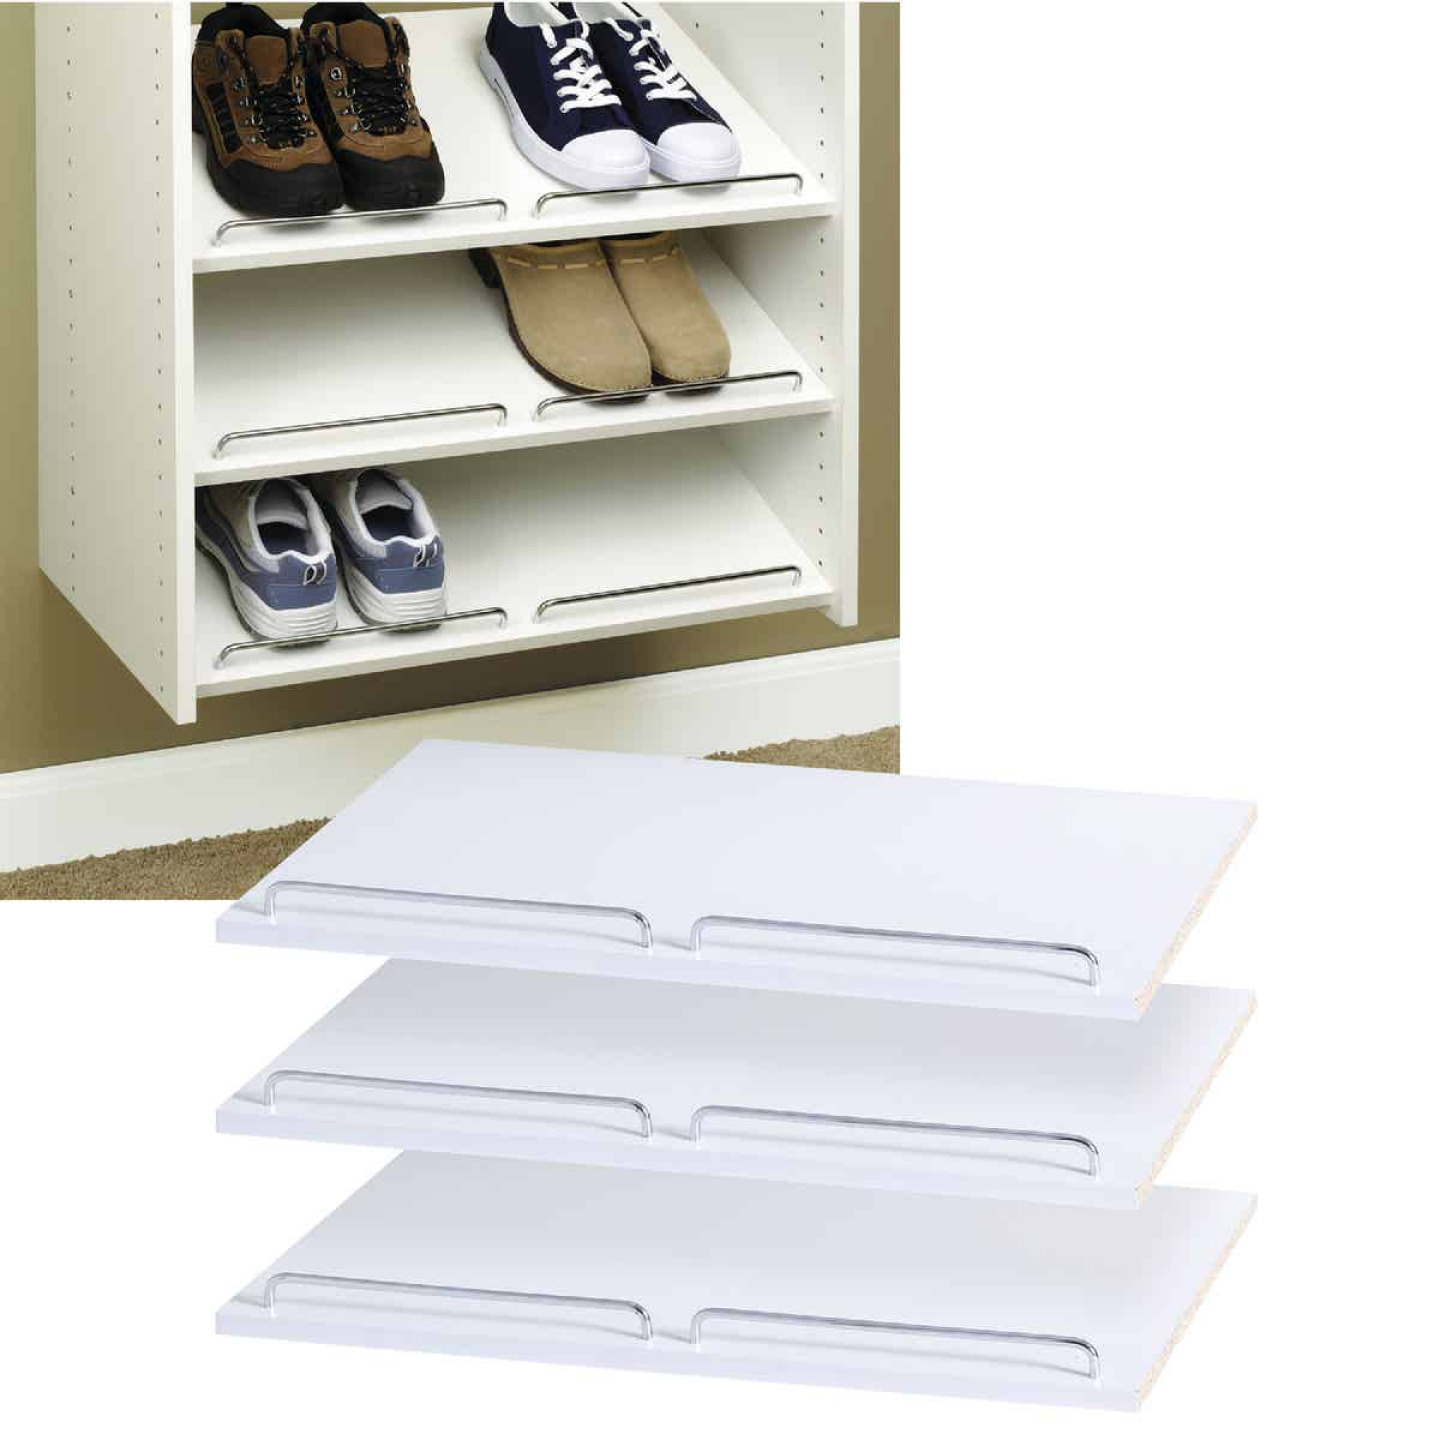 Easy Track 2 Ft. W. x 14 In. D. Laminated Shoe Shelf, White (3-Pack) Image 1